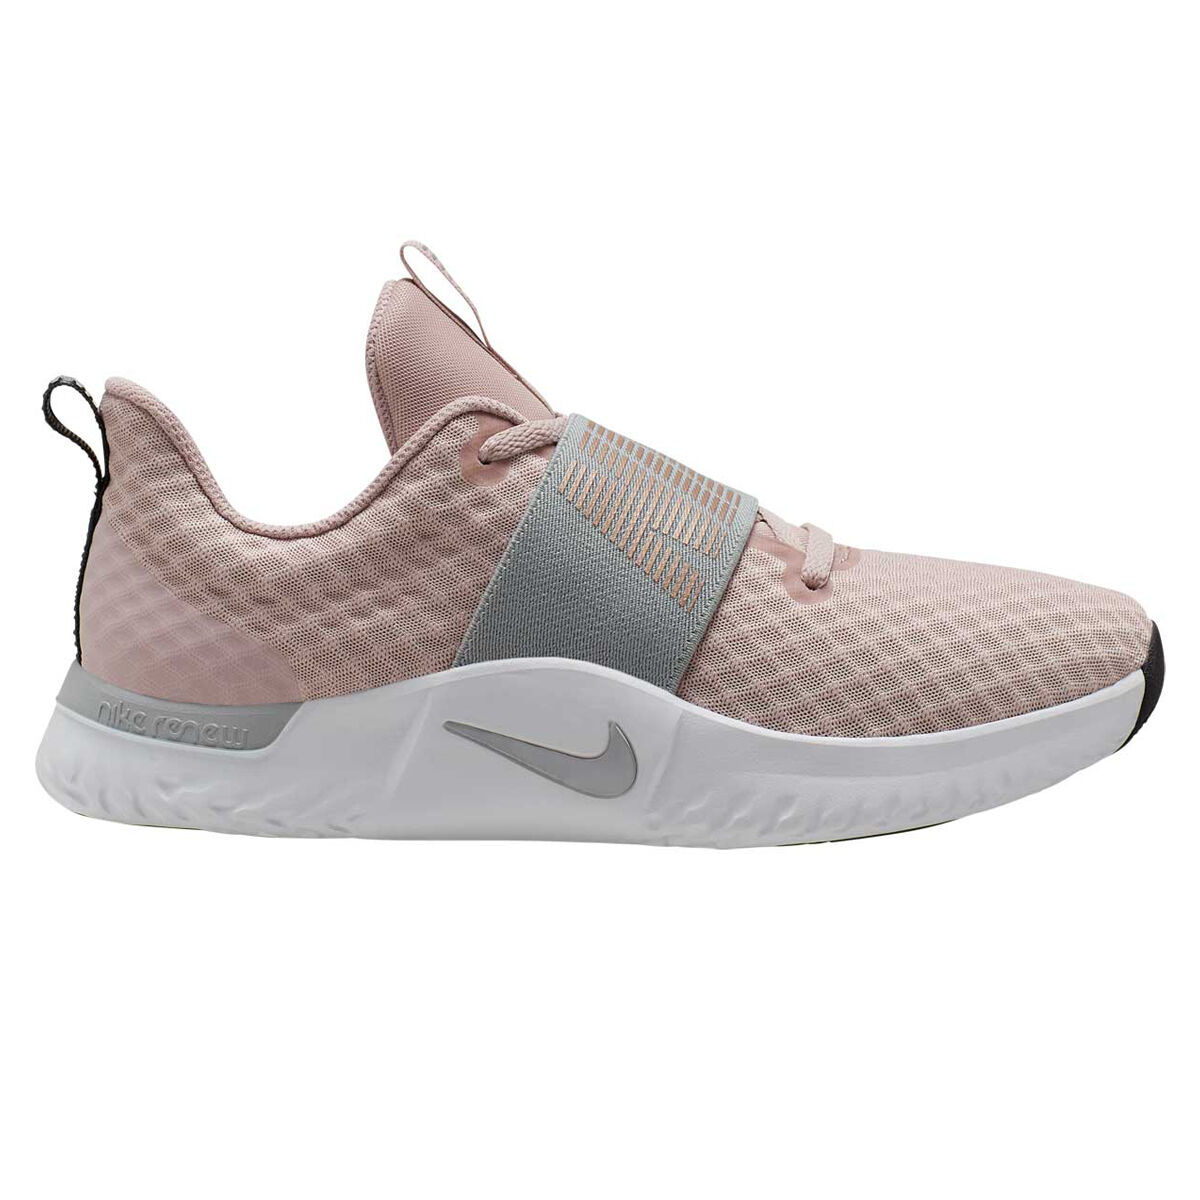 49ers Nike Training Shoe Is Now Available